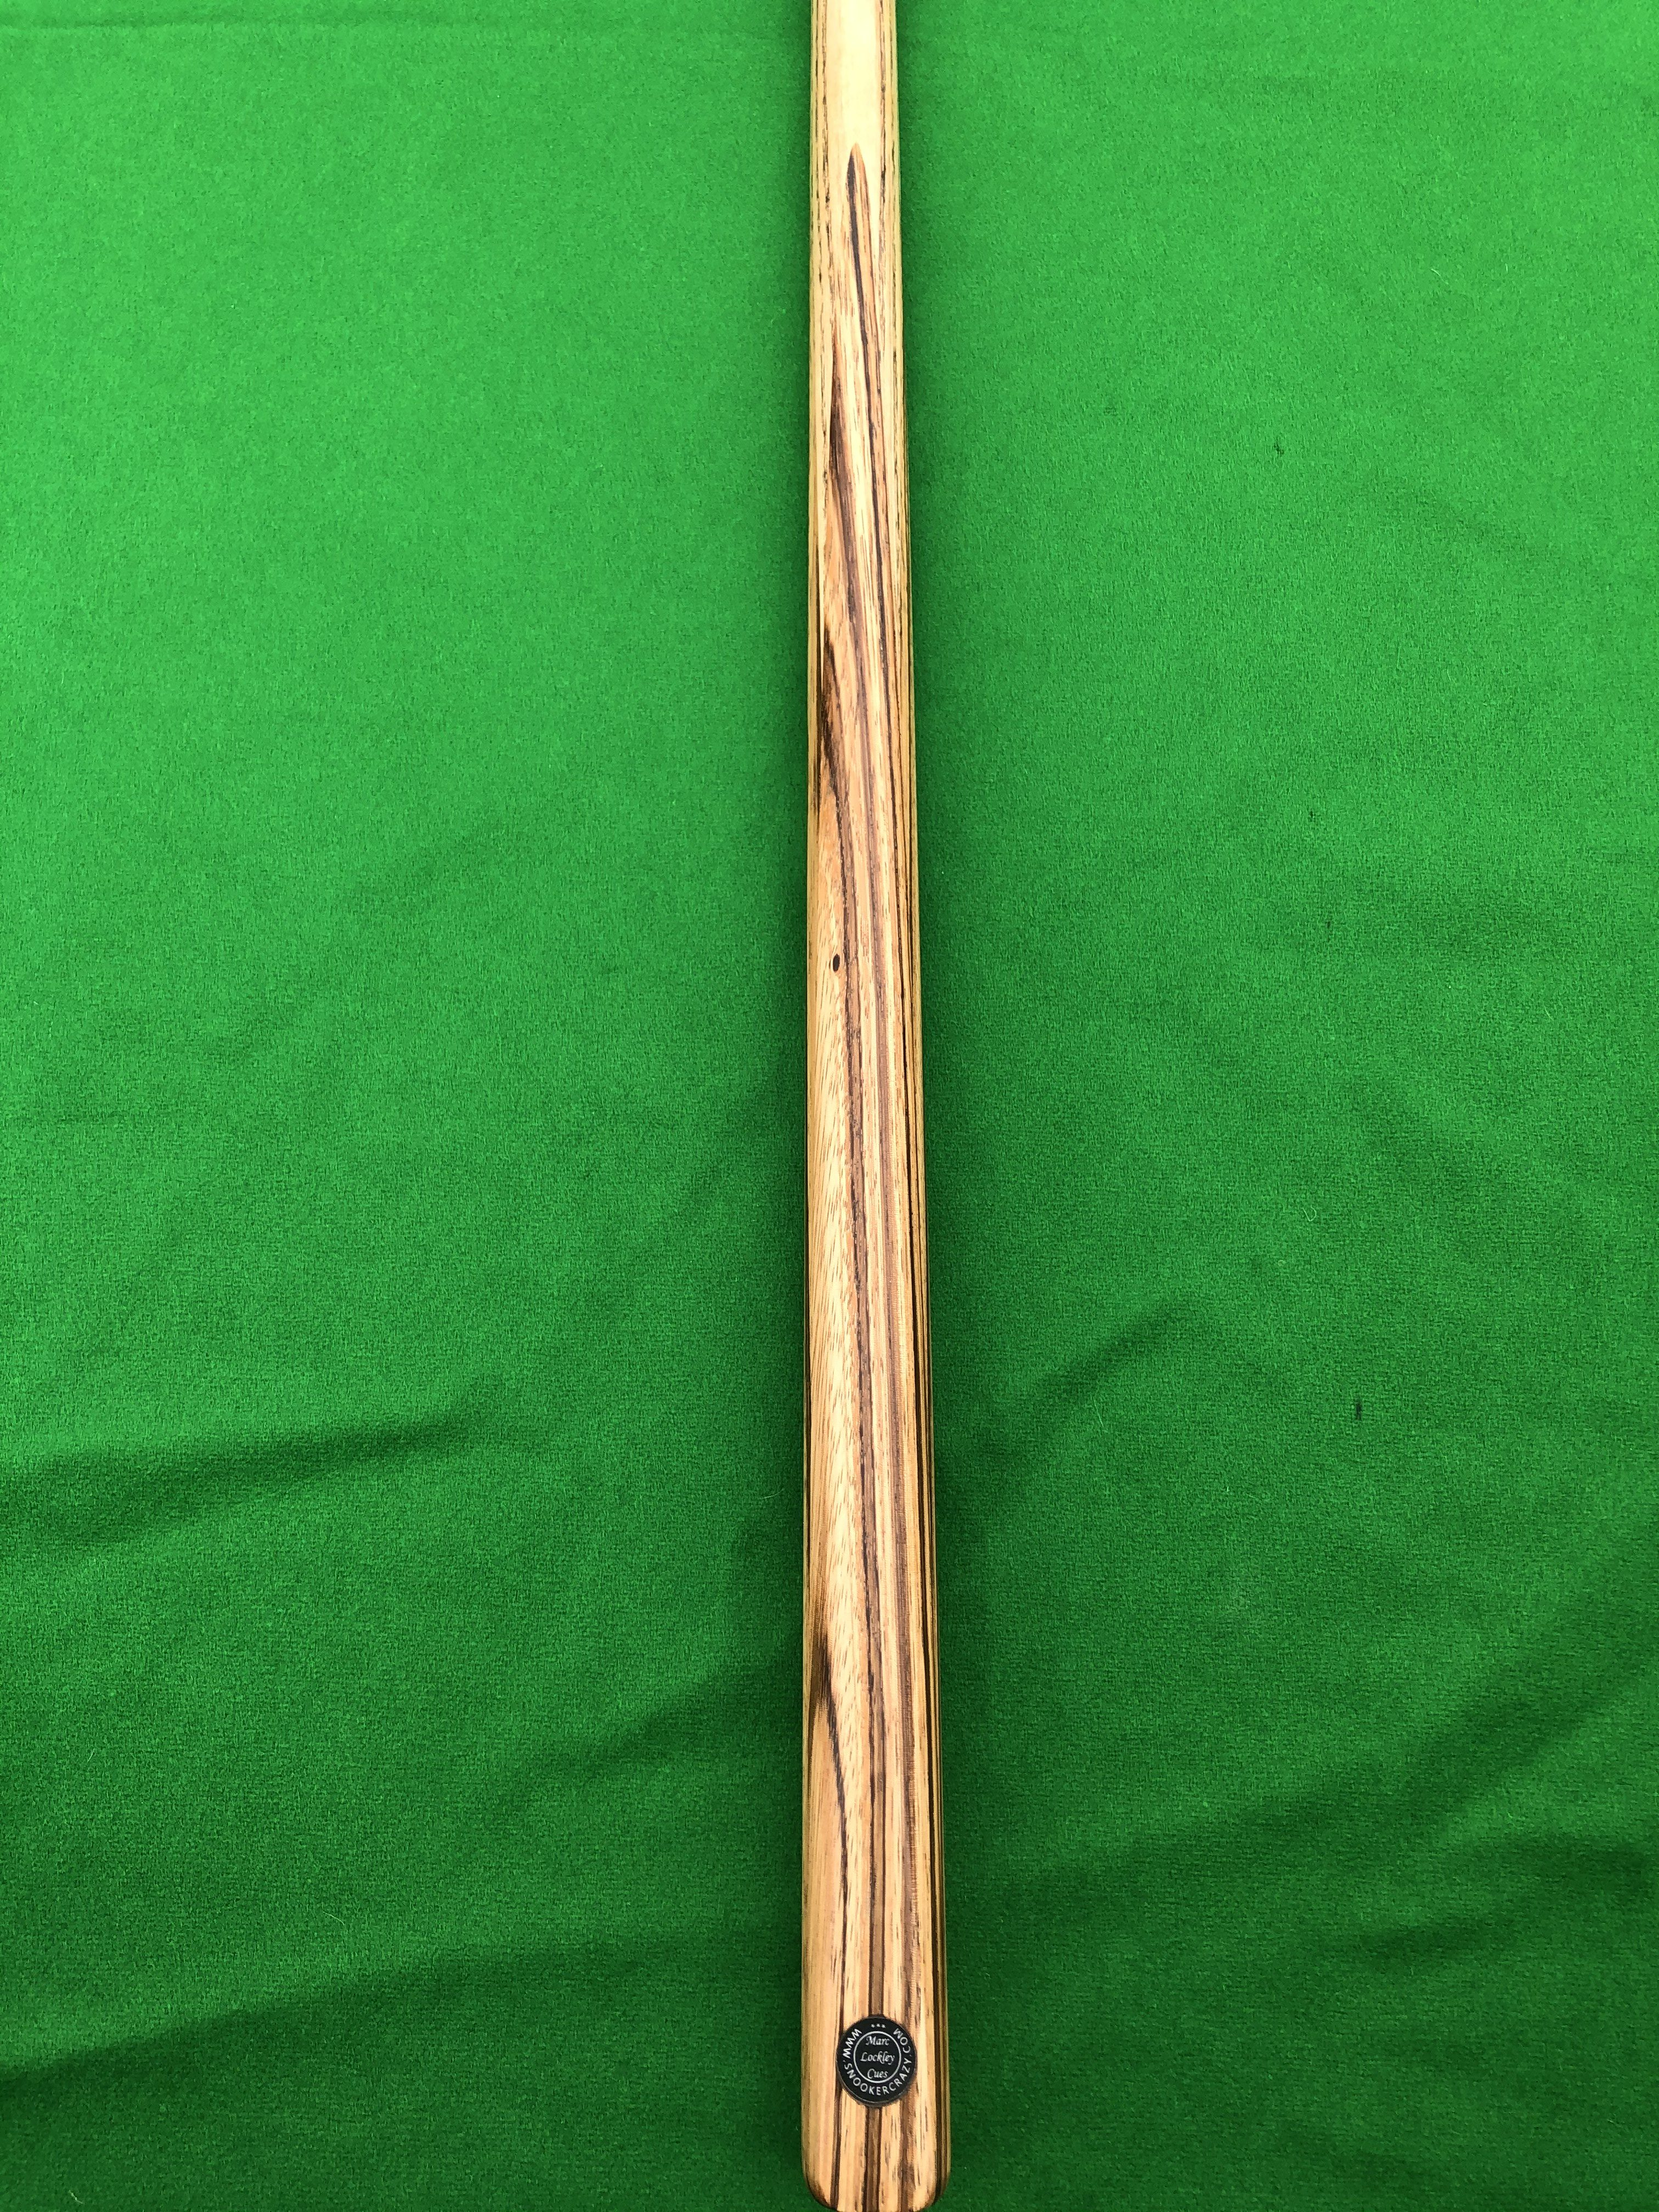 58.5 1 Piece Zebrawood Snooker Cue